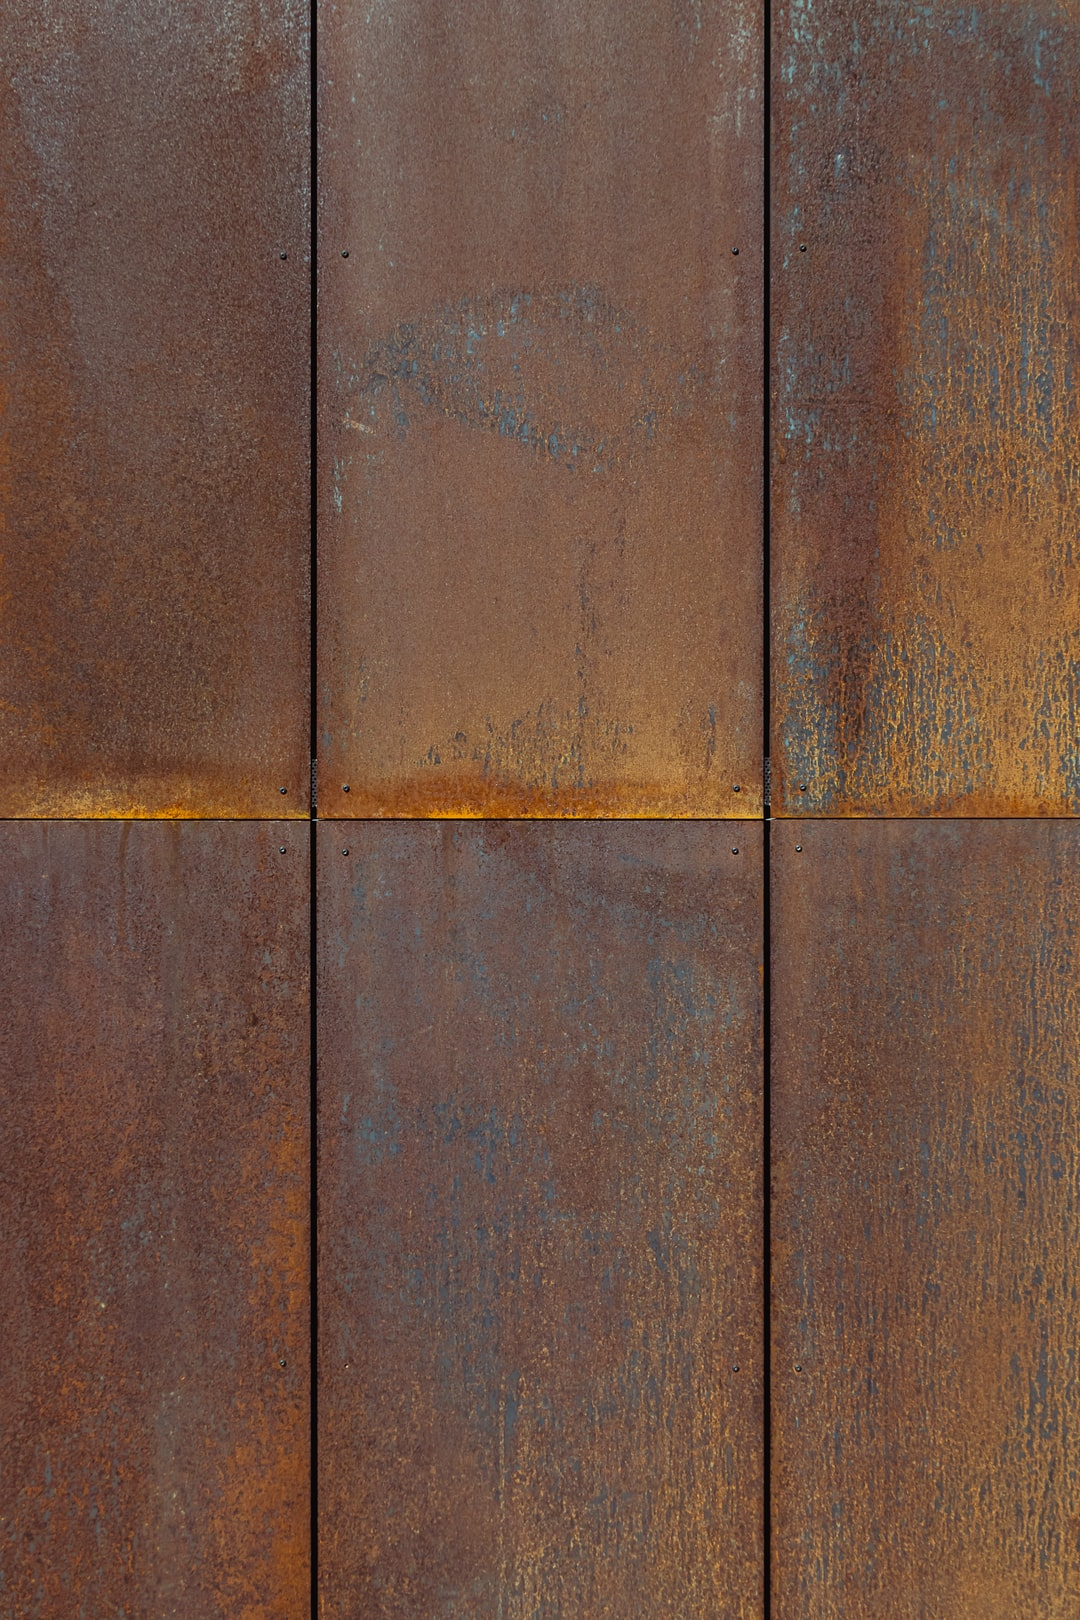 minimalist modern rusty steel wall panels